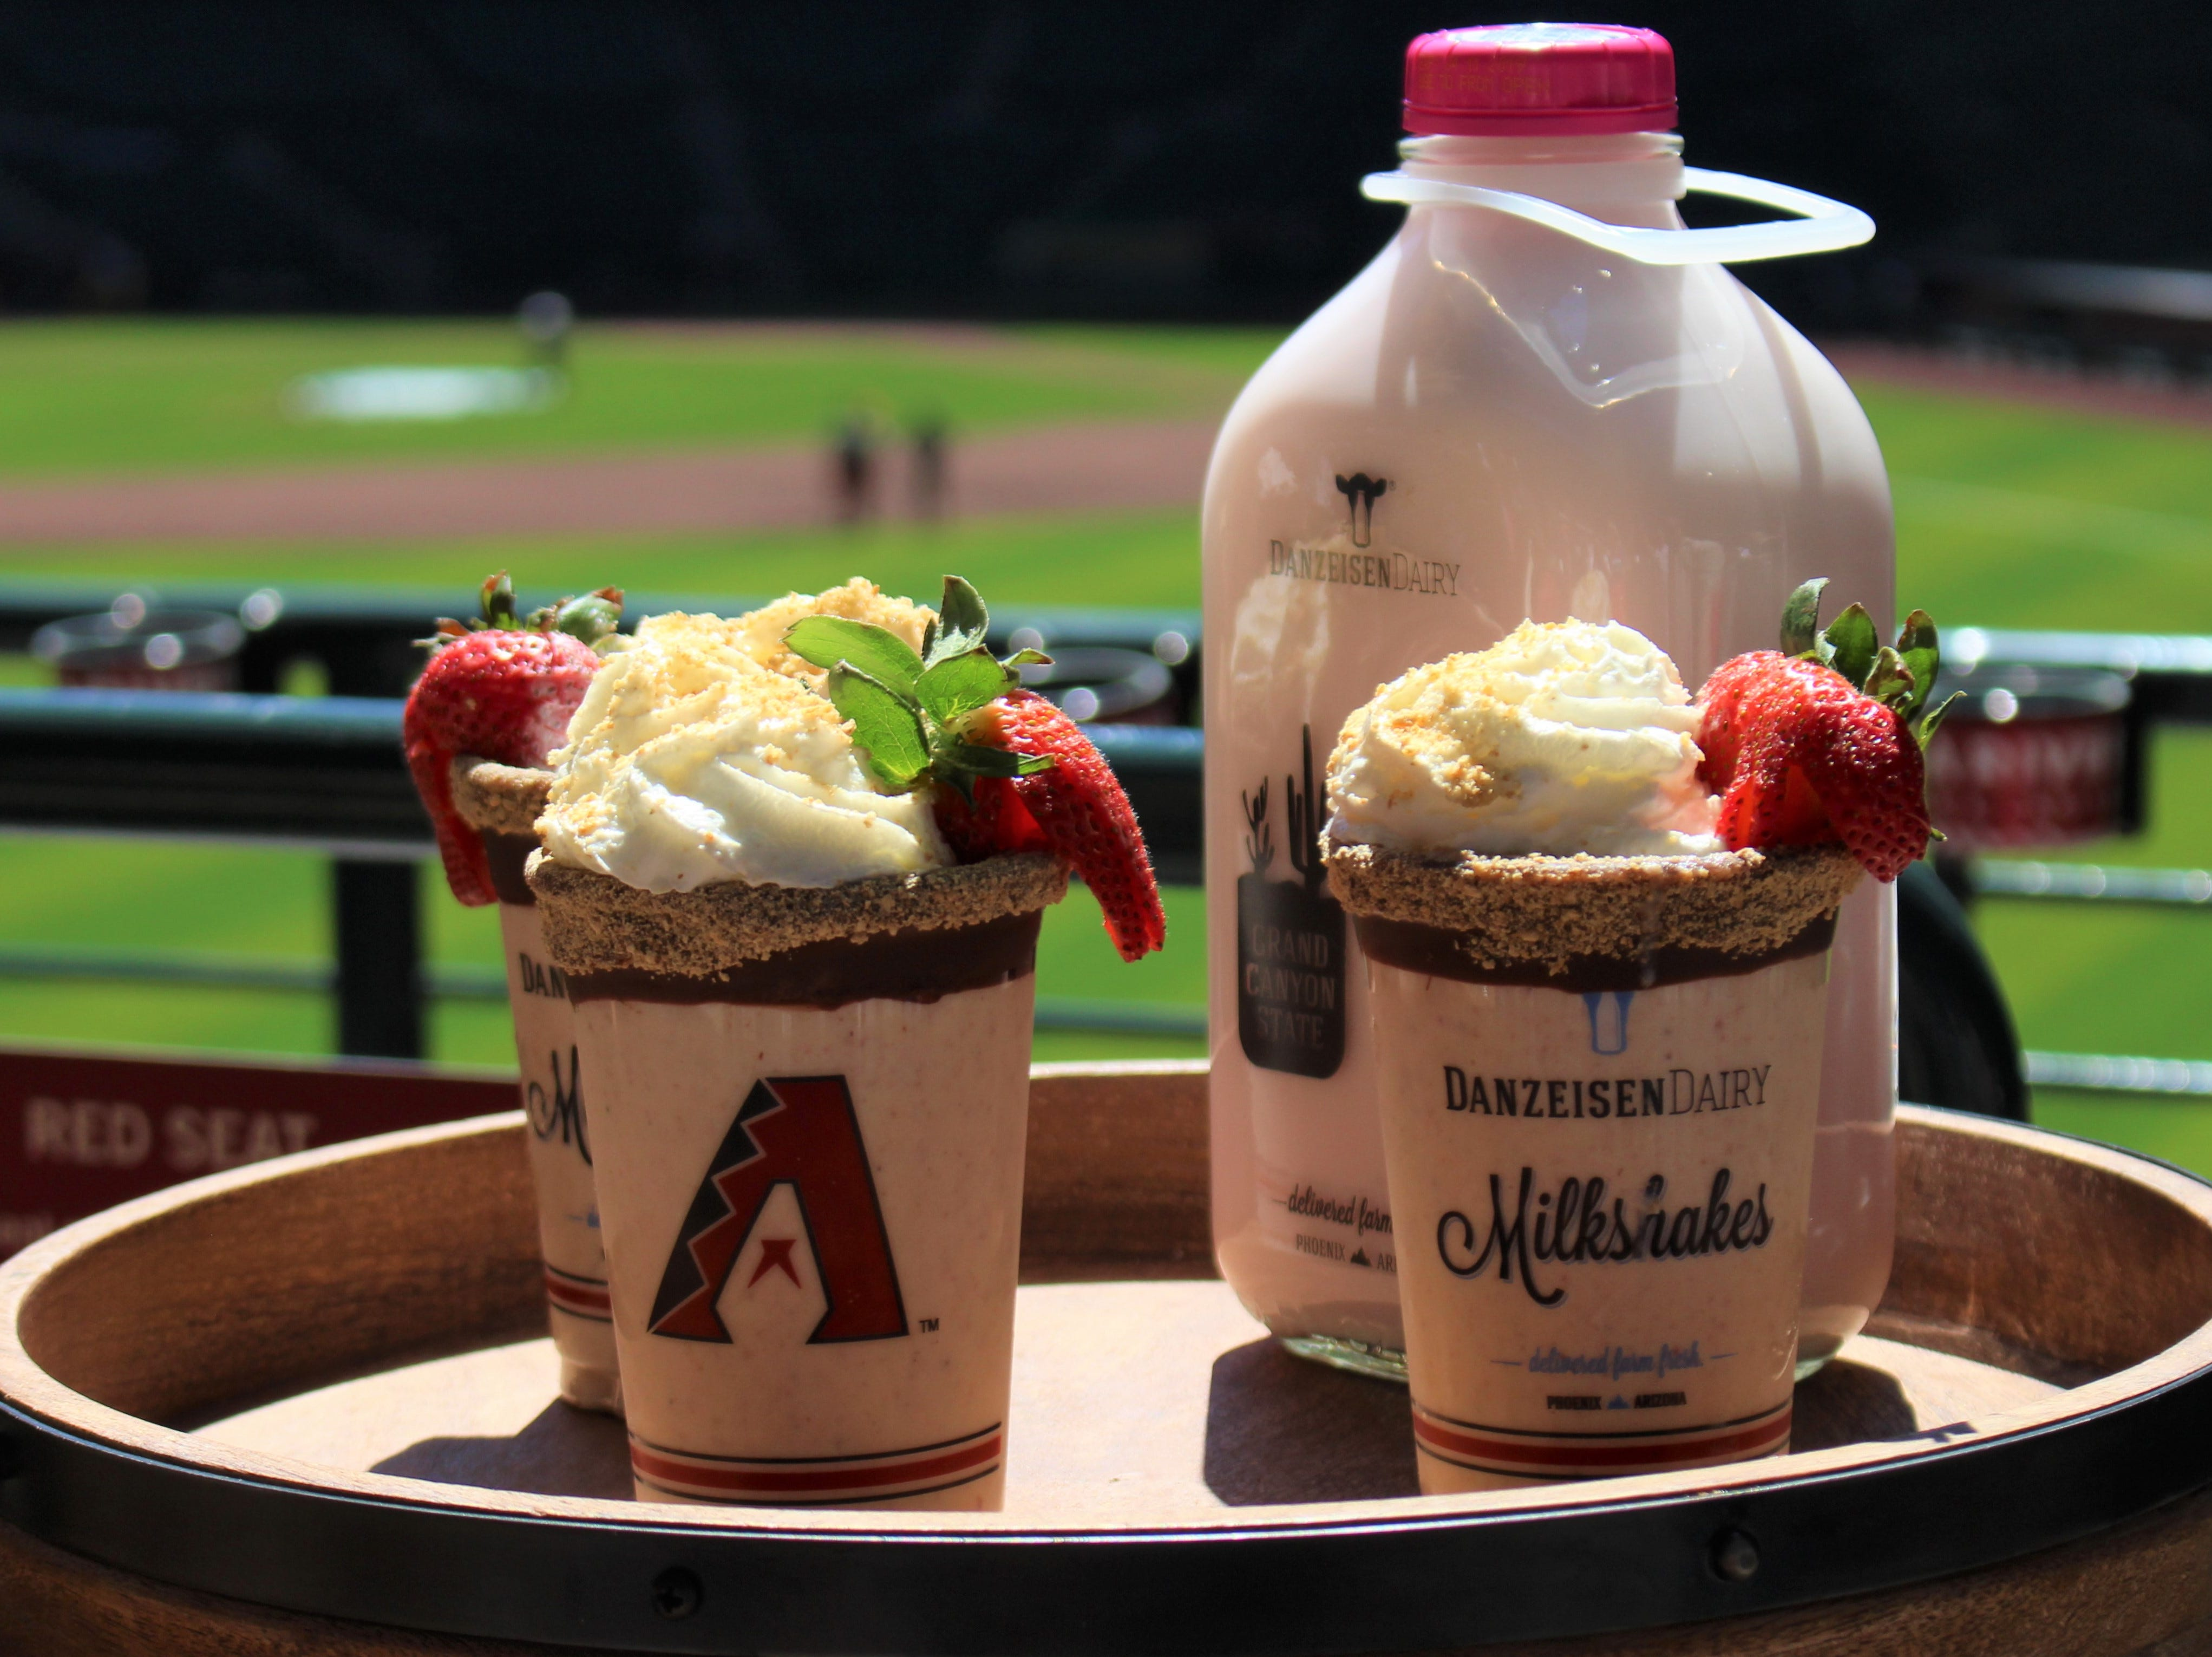 New to Chase Field: Strawberry Cheesecake Shake made with Danzeisen strawberry milk, soft serve, strawberries, graham cracker crumbs, New York cheesecake, whipped cream, chocolate and a graham cracker rim. Available for $10 at Sizzle & Cheese and Taste of Chase.